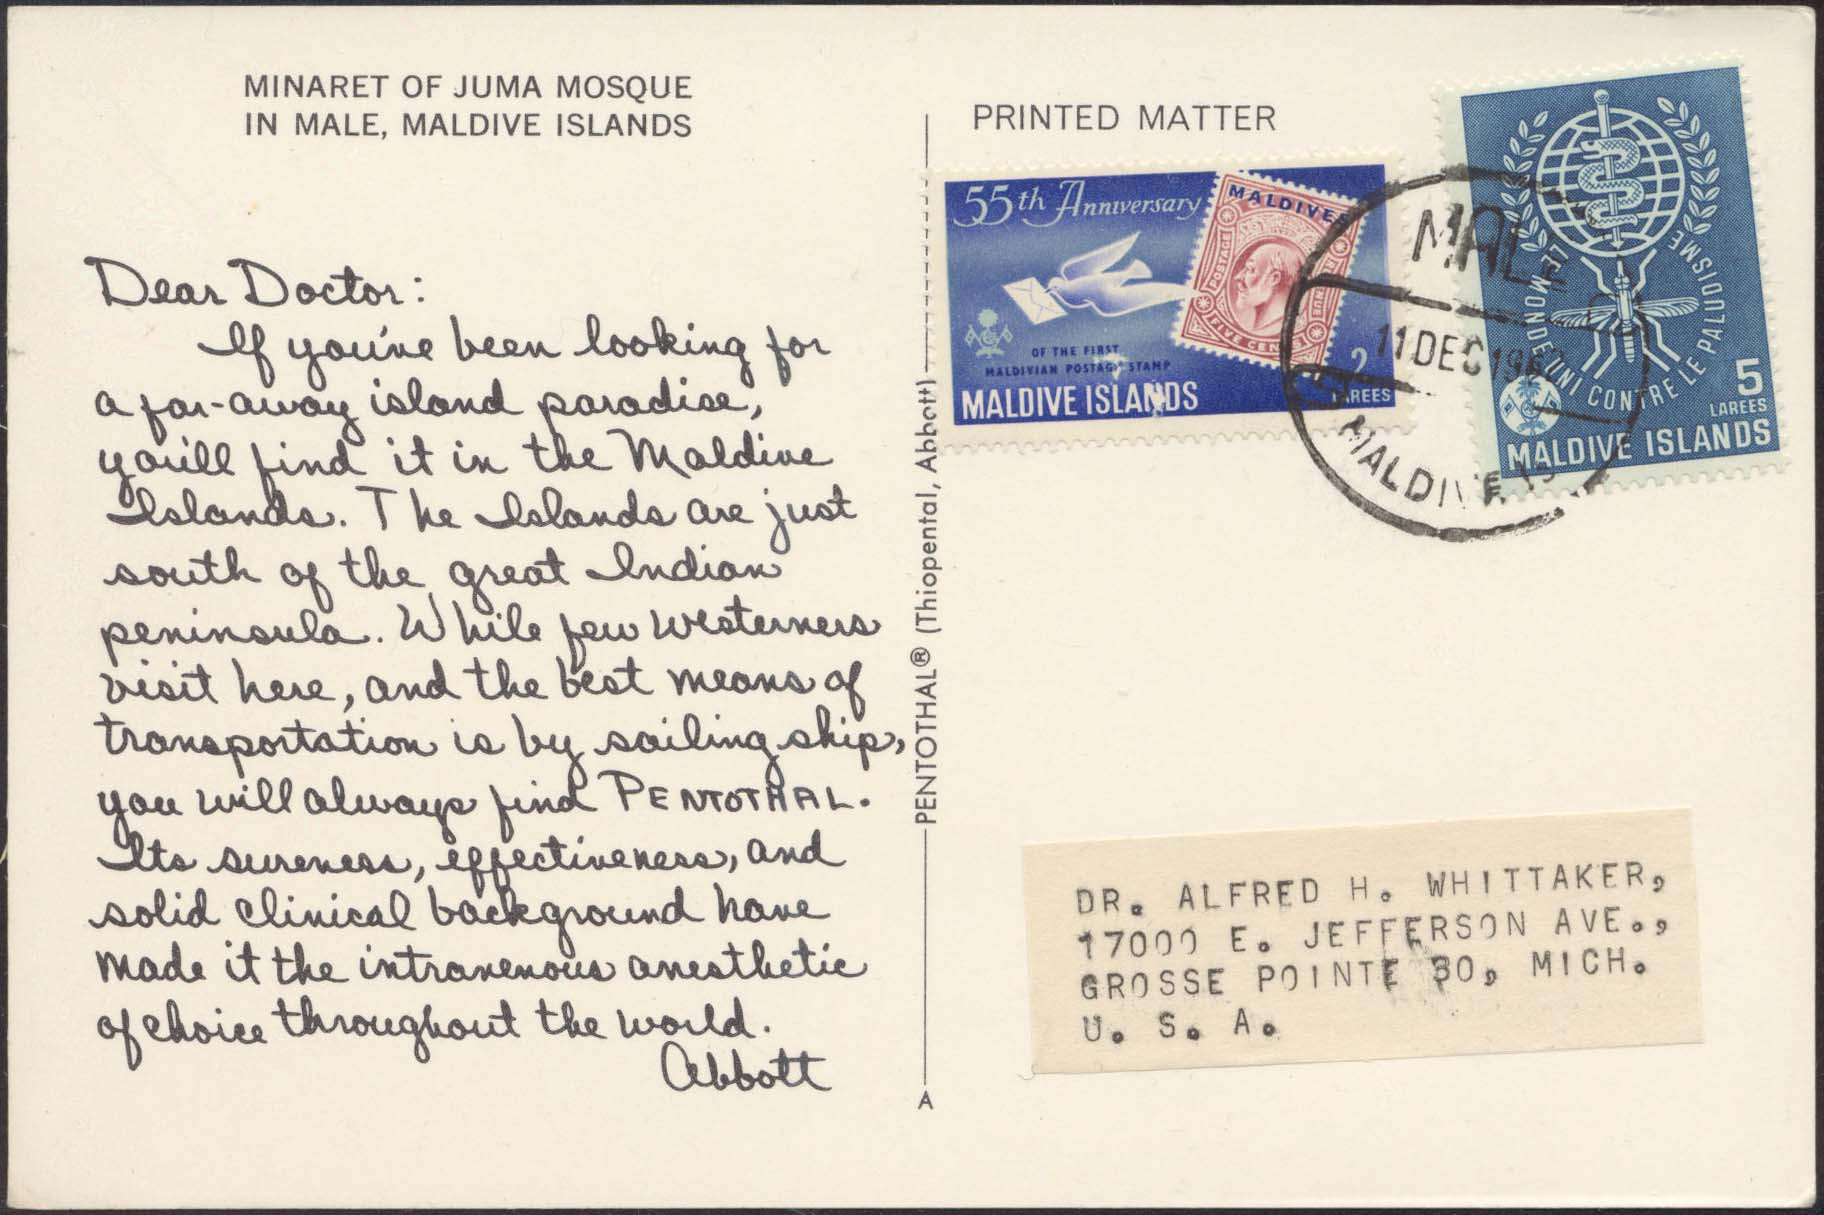 Dear Doctor Postcard - Type A - United States - 1962, Dec 11